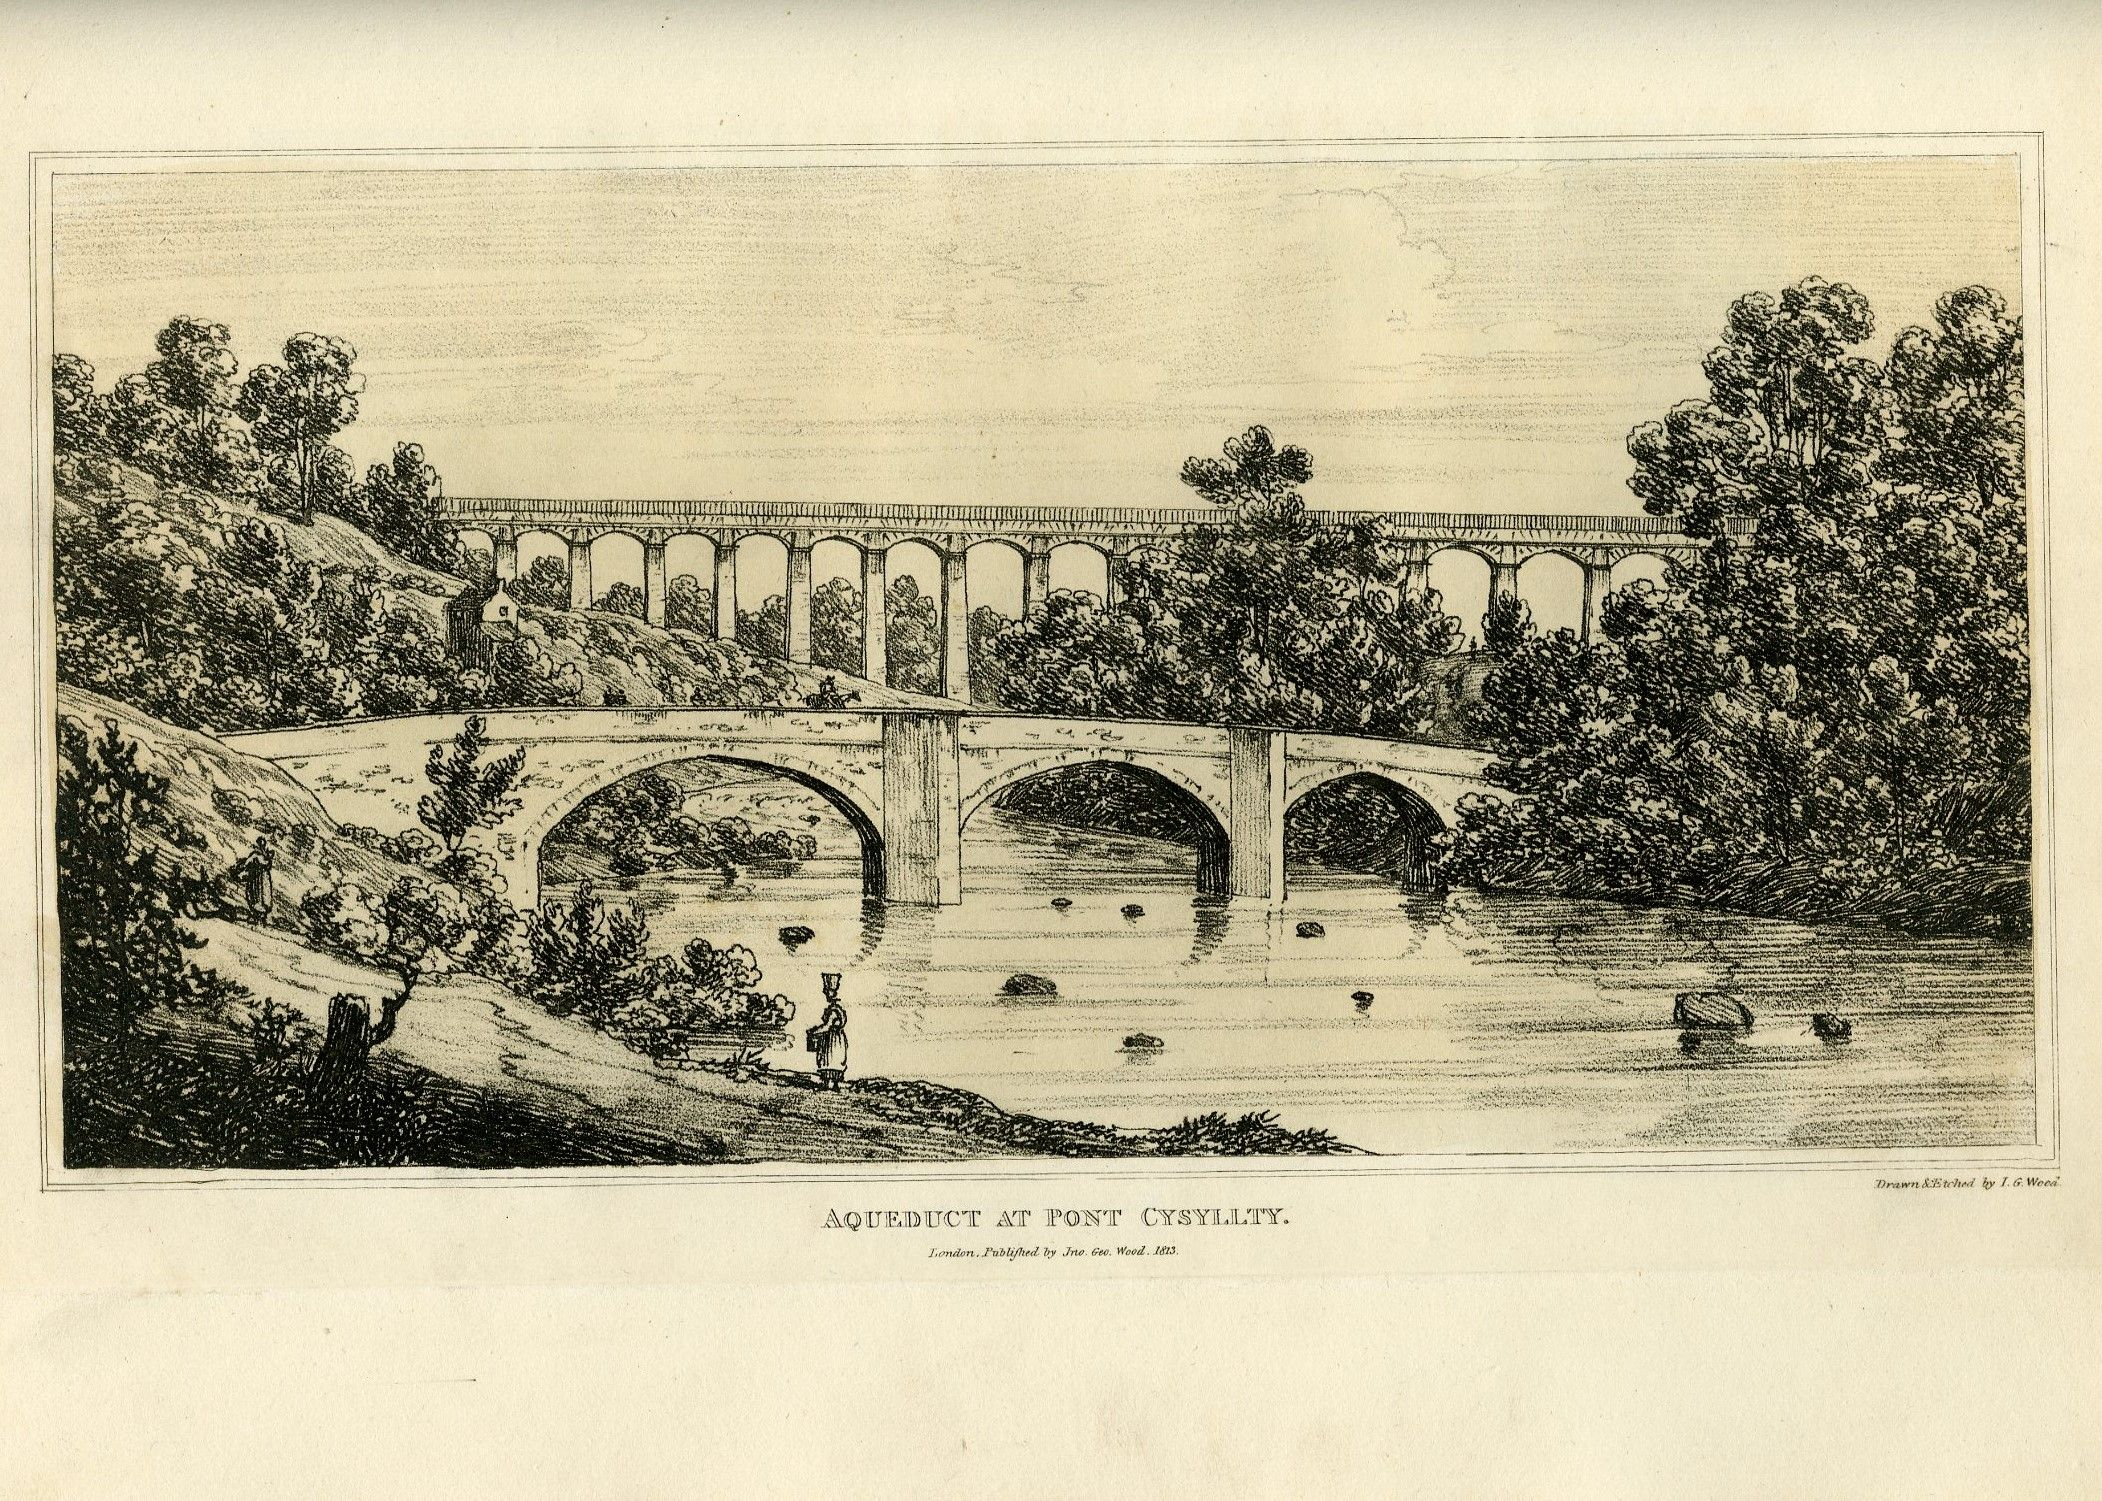 This picture is of the Aqueduct at Pontcysyllte, designed and built by Thomas Telford and William Jessop. Engraving from John George Wood's 'The principal rivers of Wales illustrated' (1813).